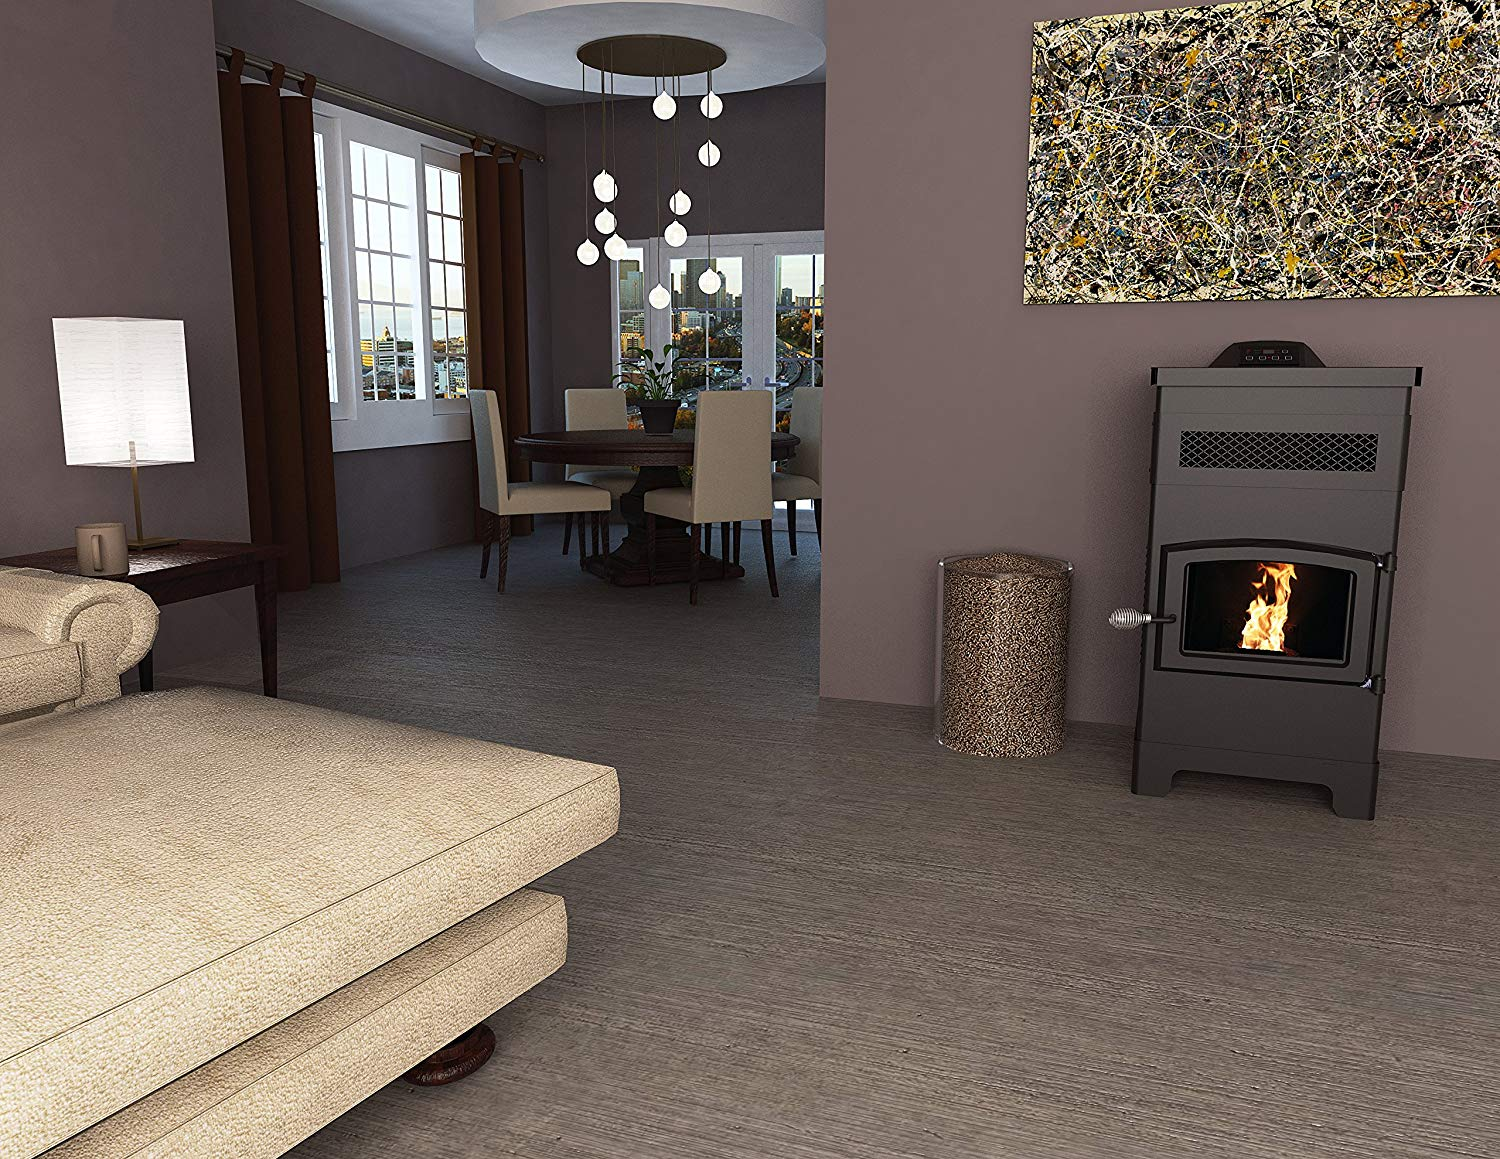 Vogelzang Pellet Stove near a couch